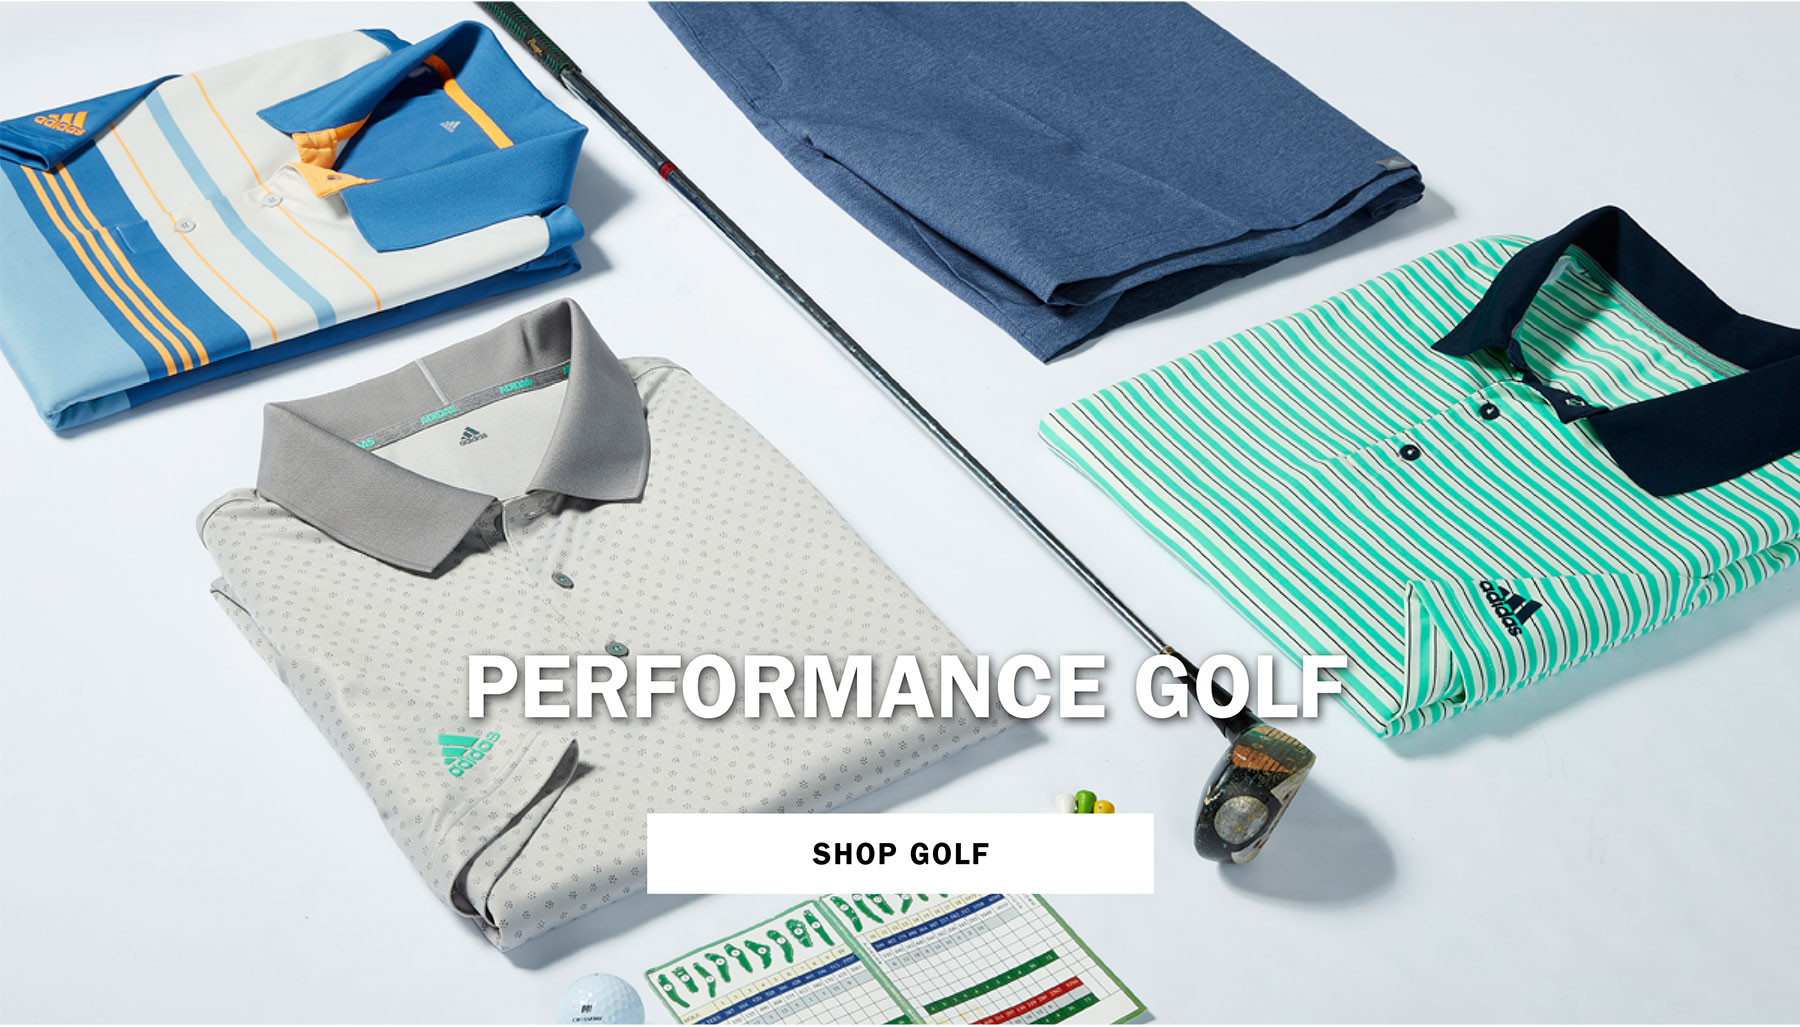 PERFORMANCE GOLF | SHOP GOLF